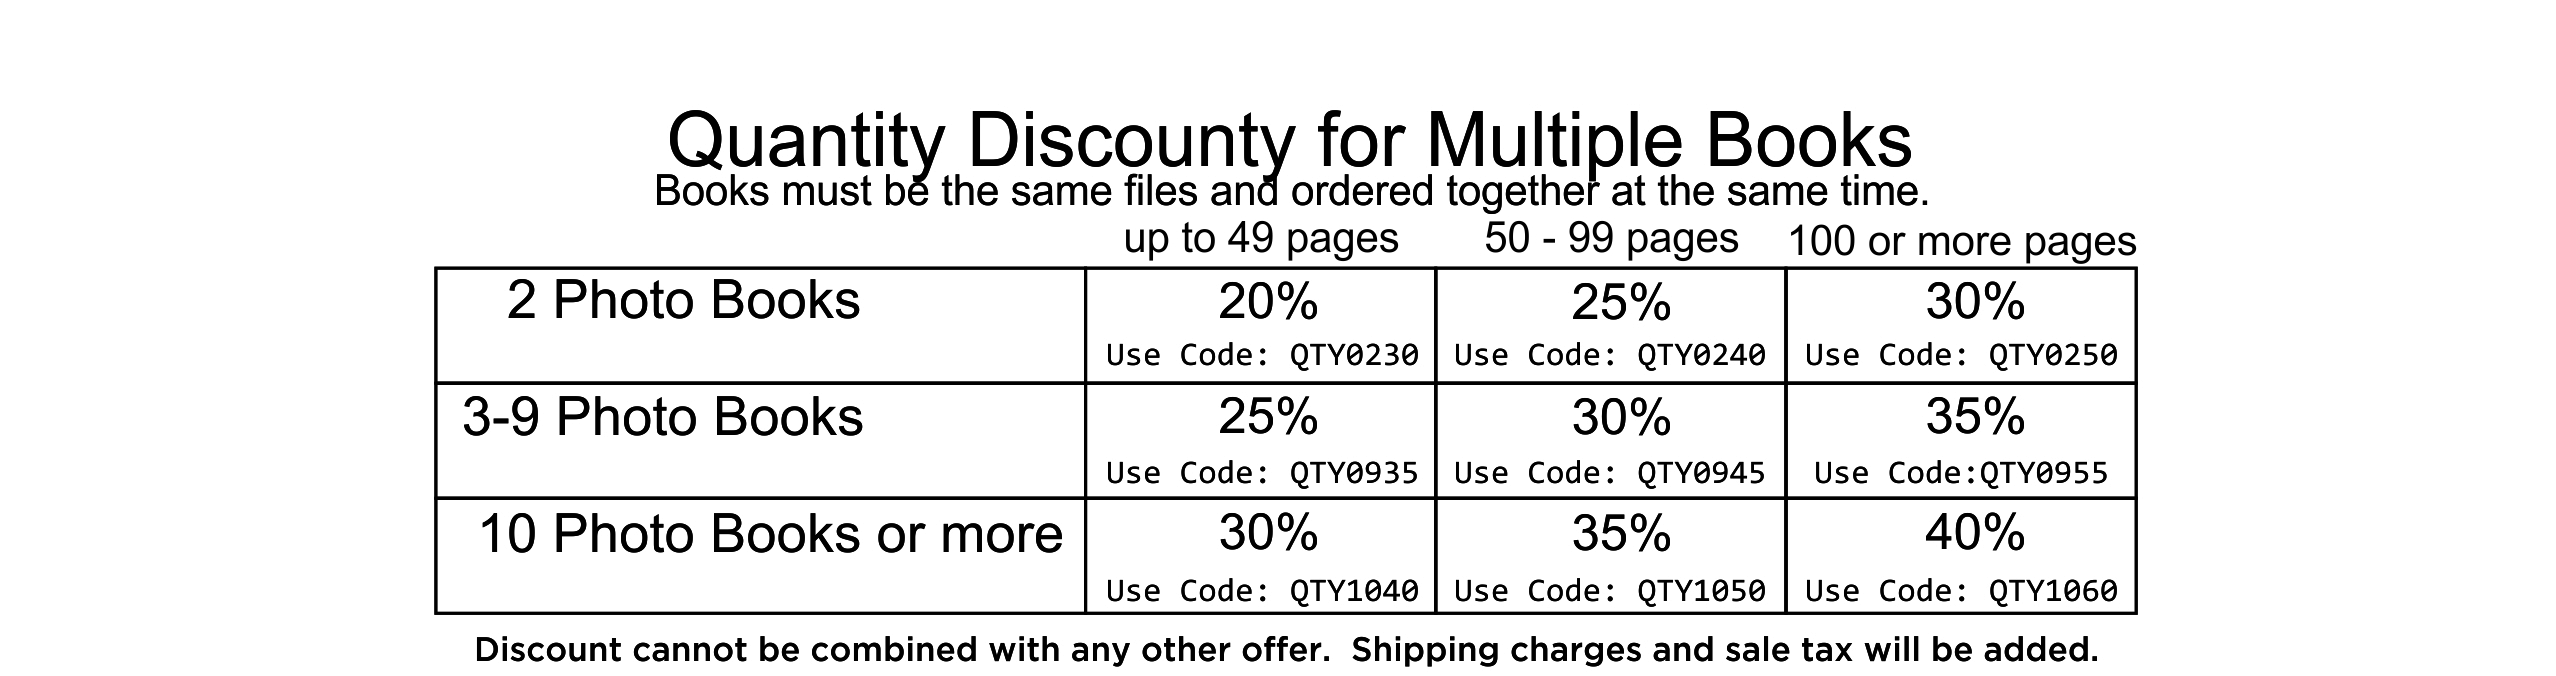 Booklet quantity discount table